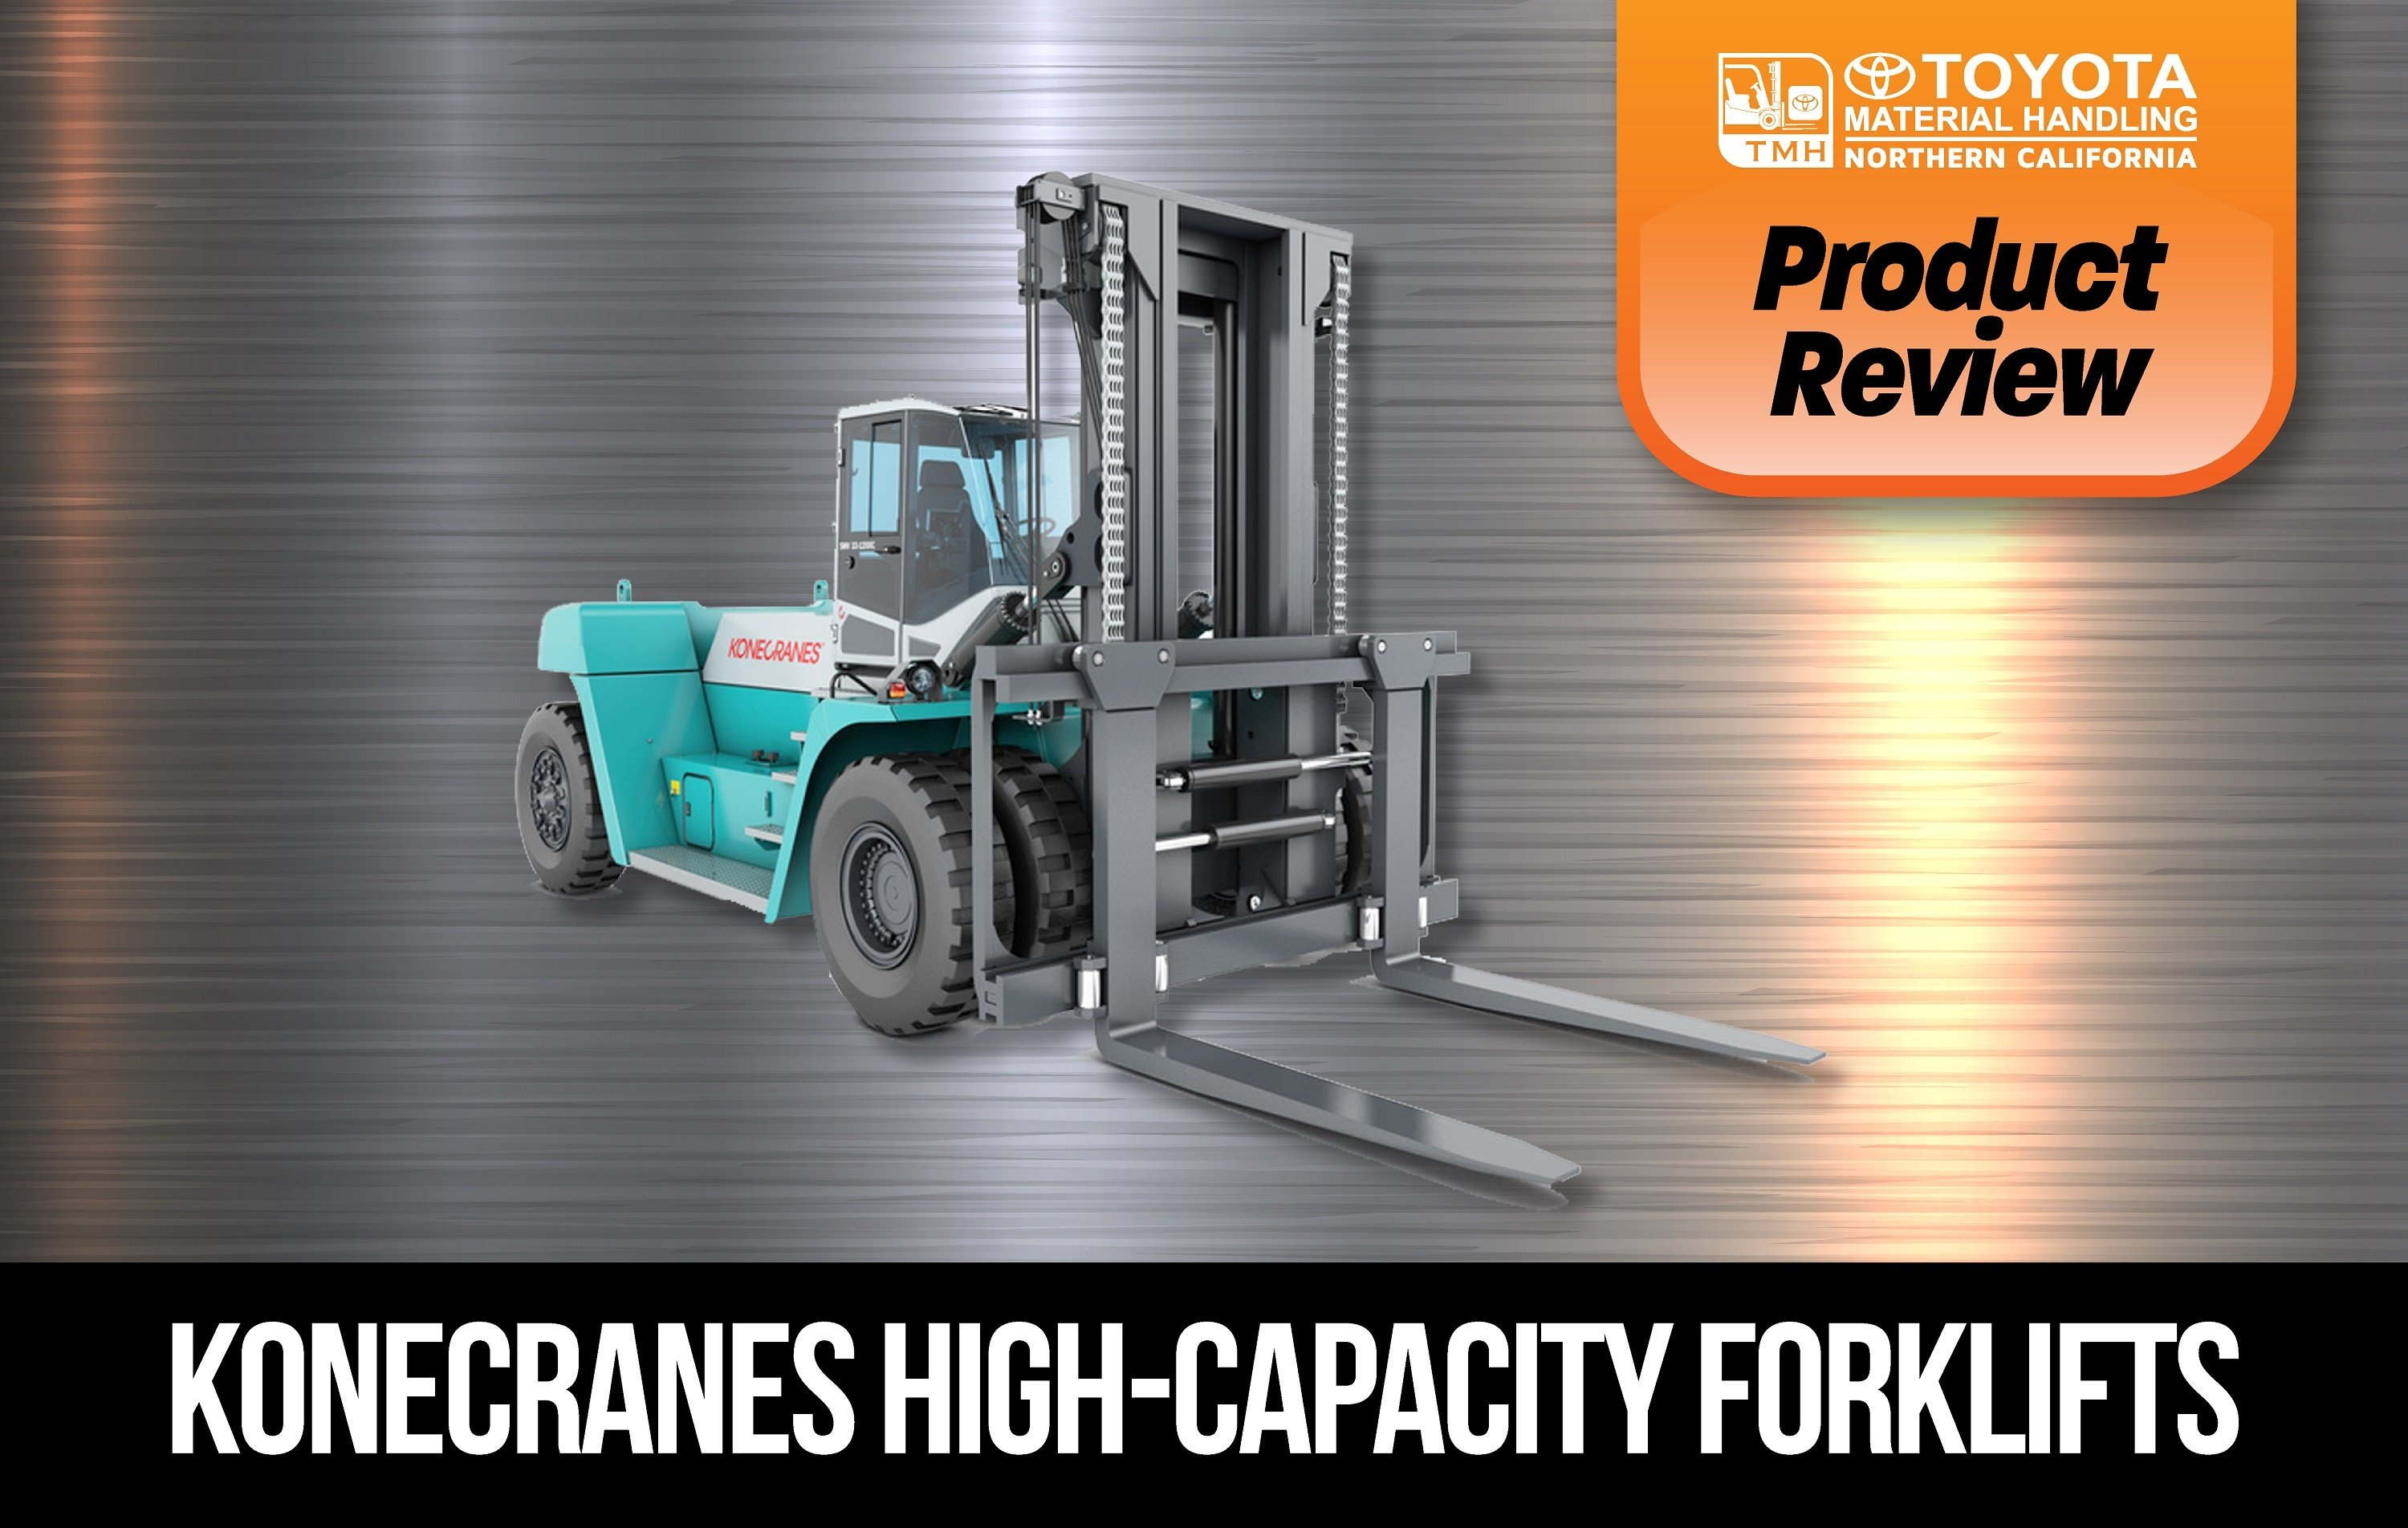 product review konecranes high-capacity forklifts